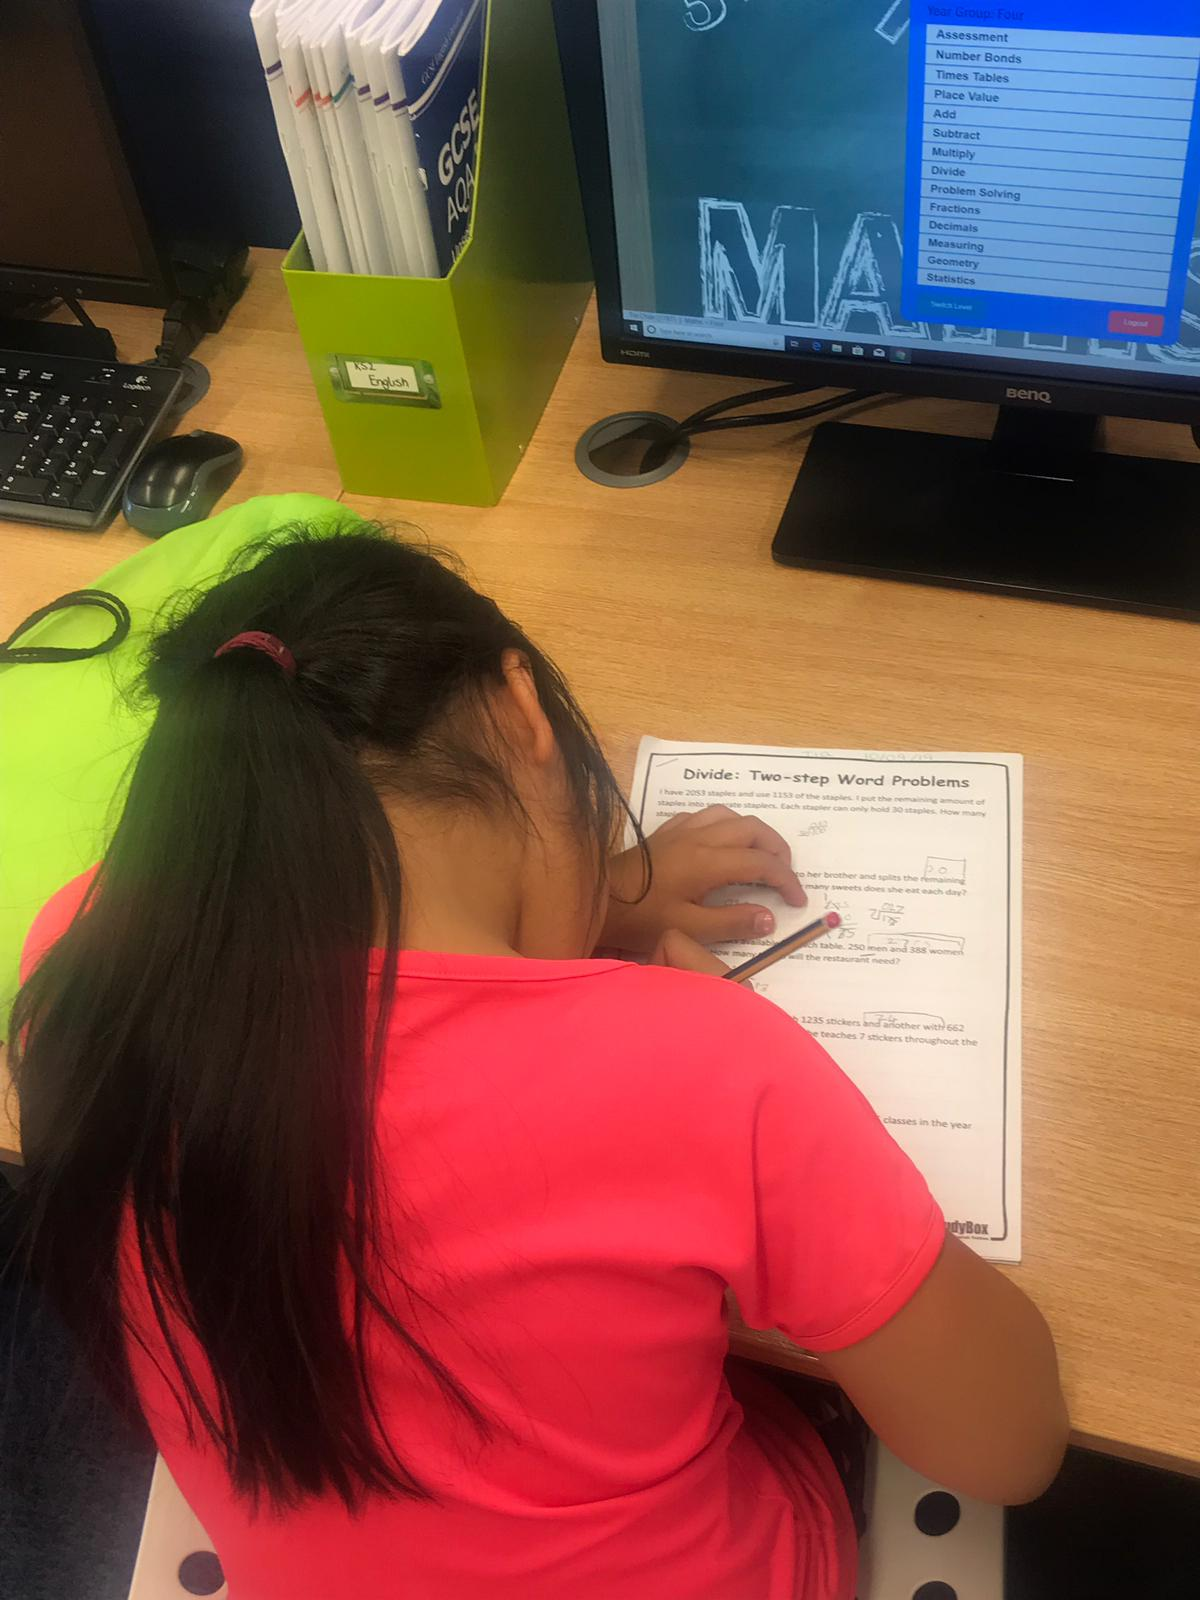 Image of a child studying at a desk.